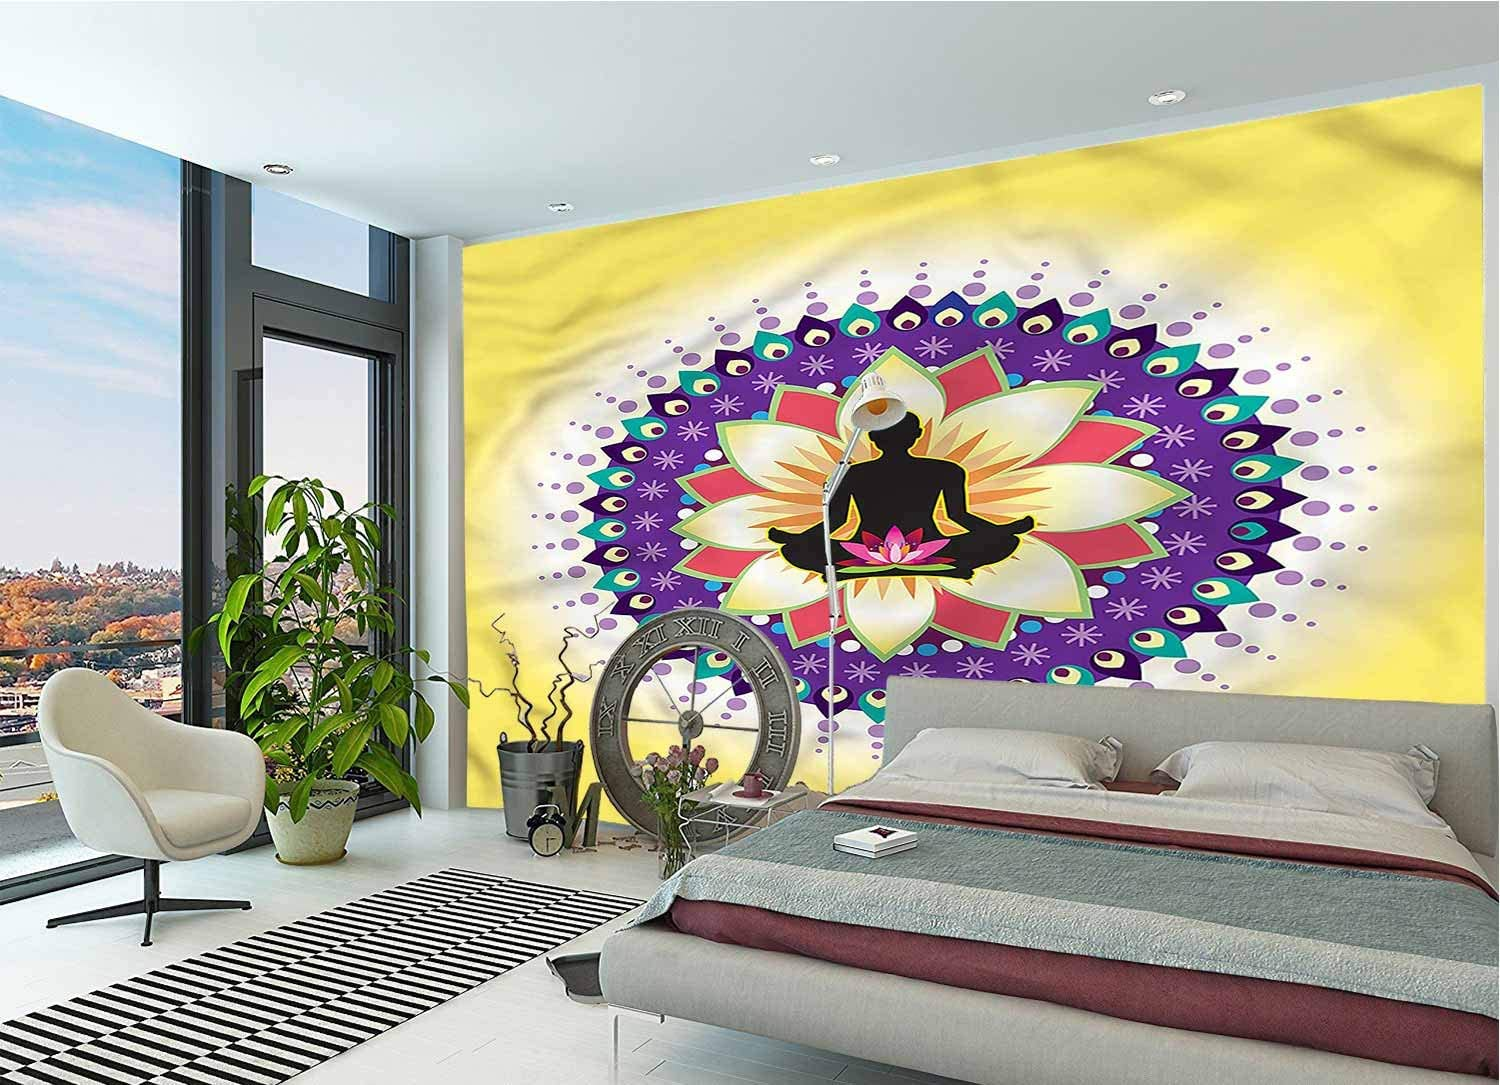 LCGGDB 3D Print Wall Mural Decal,Round Circle Lotus Icon Peel and Stick Self-Adhesive Wallpaper for Livingroom Bedroom Nursery School Family Wall Decals-144x100 Inch